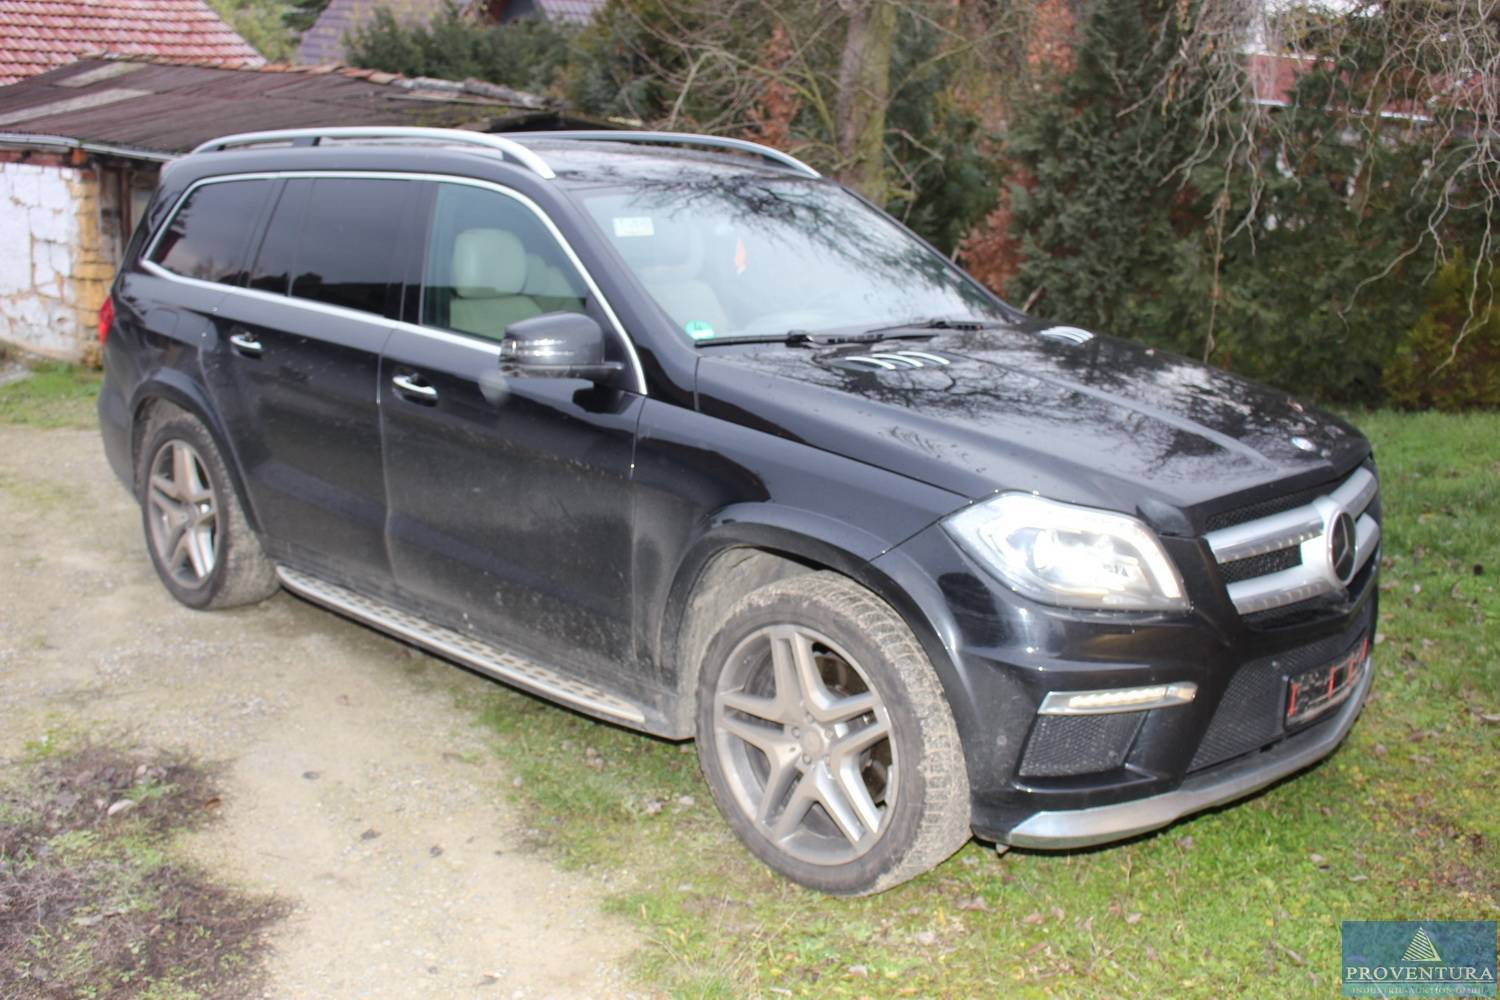 Pkw MERCEDES-BENZ GL350 Bluetec 4-matic EZ 2016, Raum 997xx Sondershausen